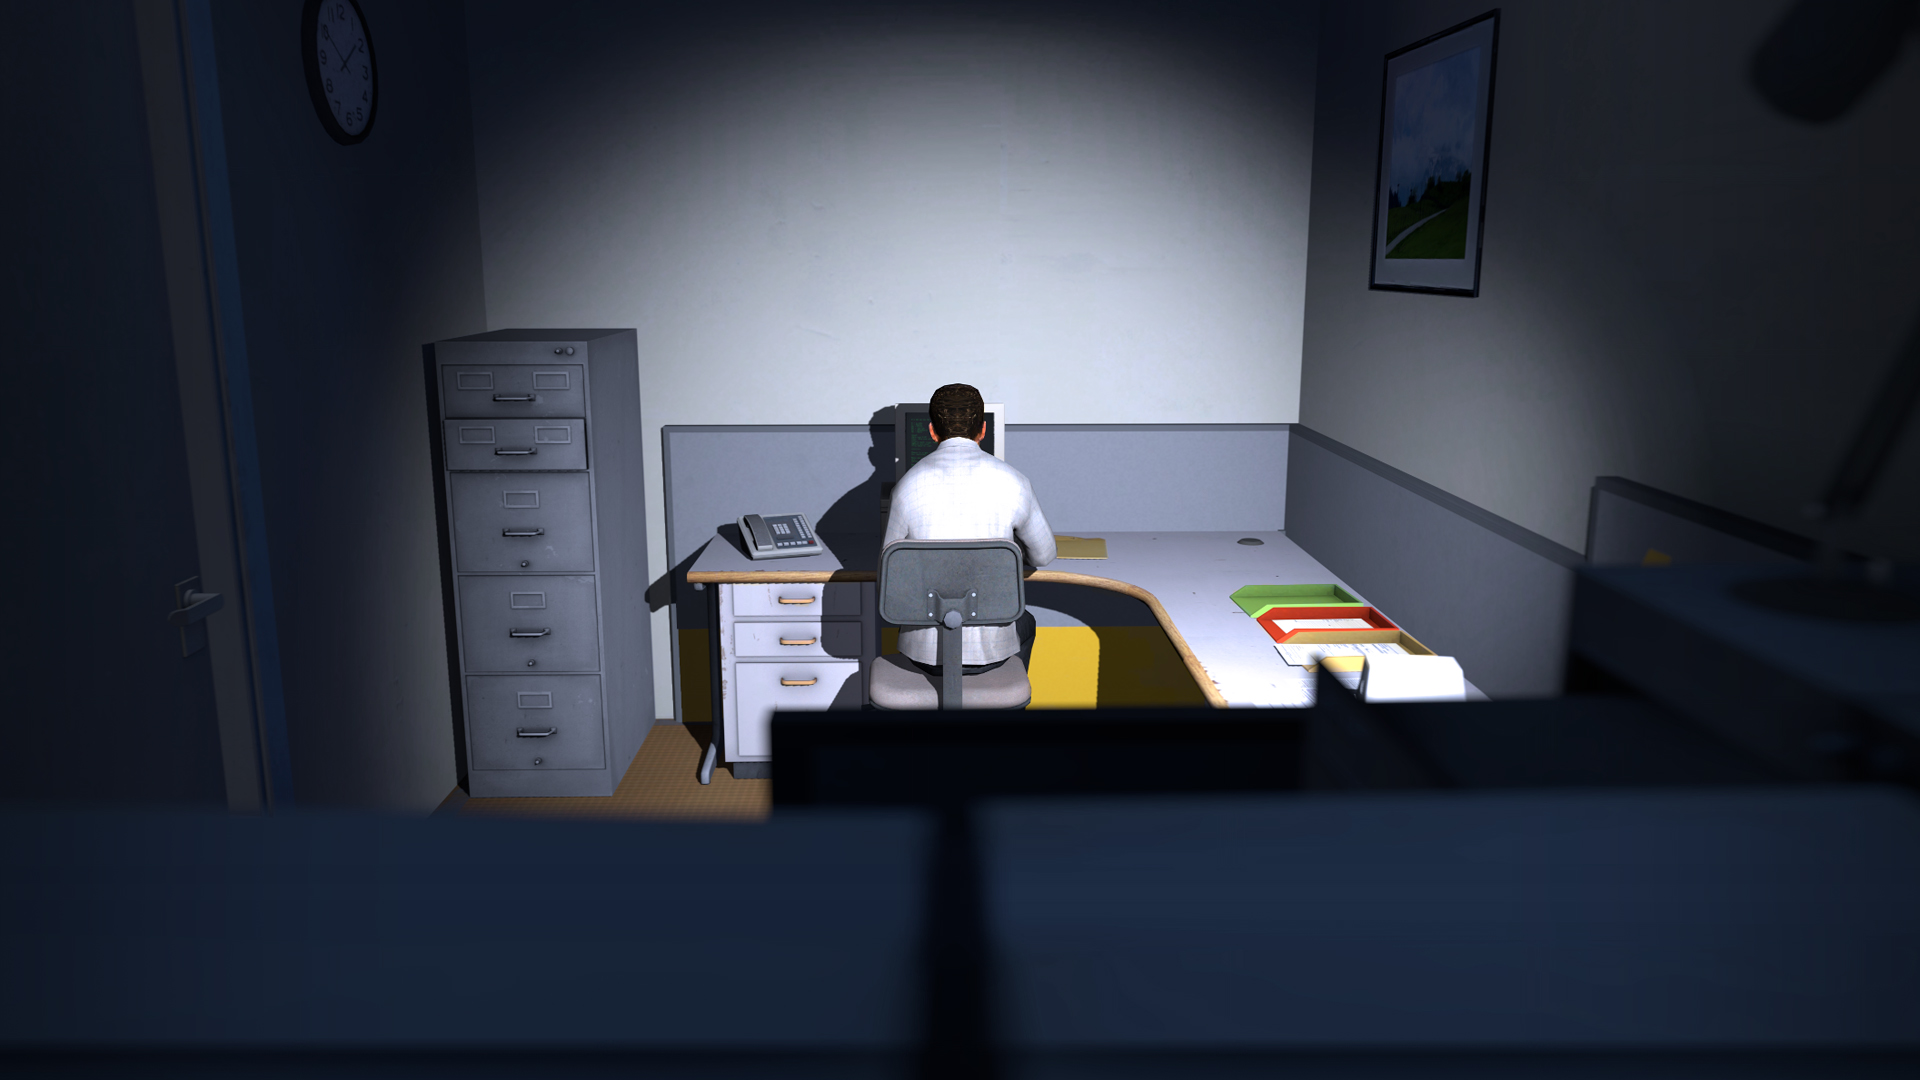 The Stanley Parable is coming to the consoles